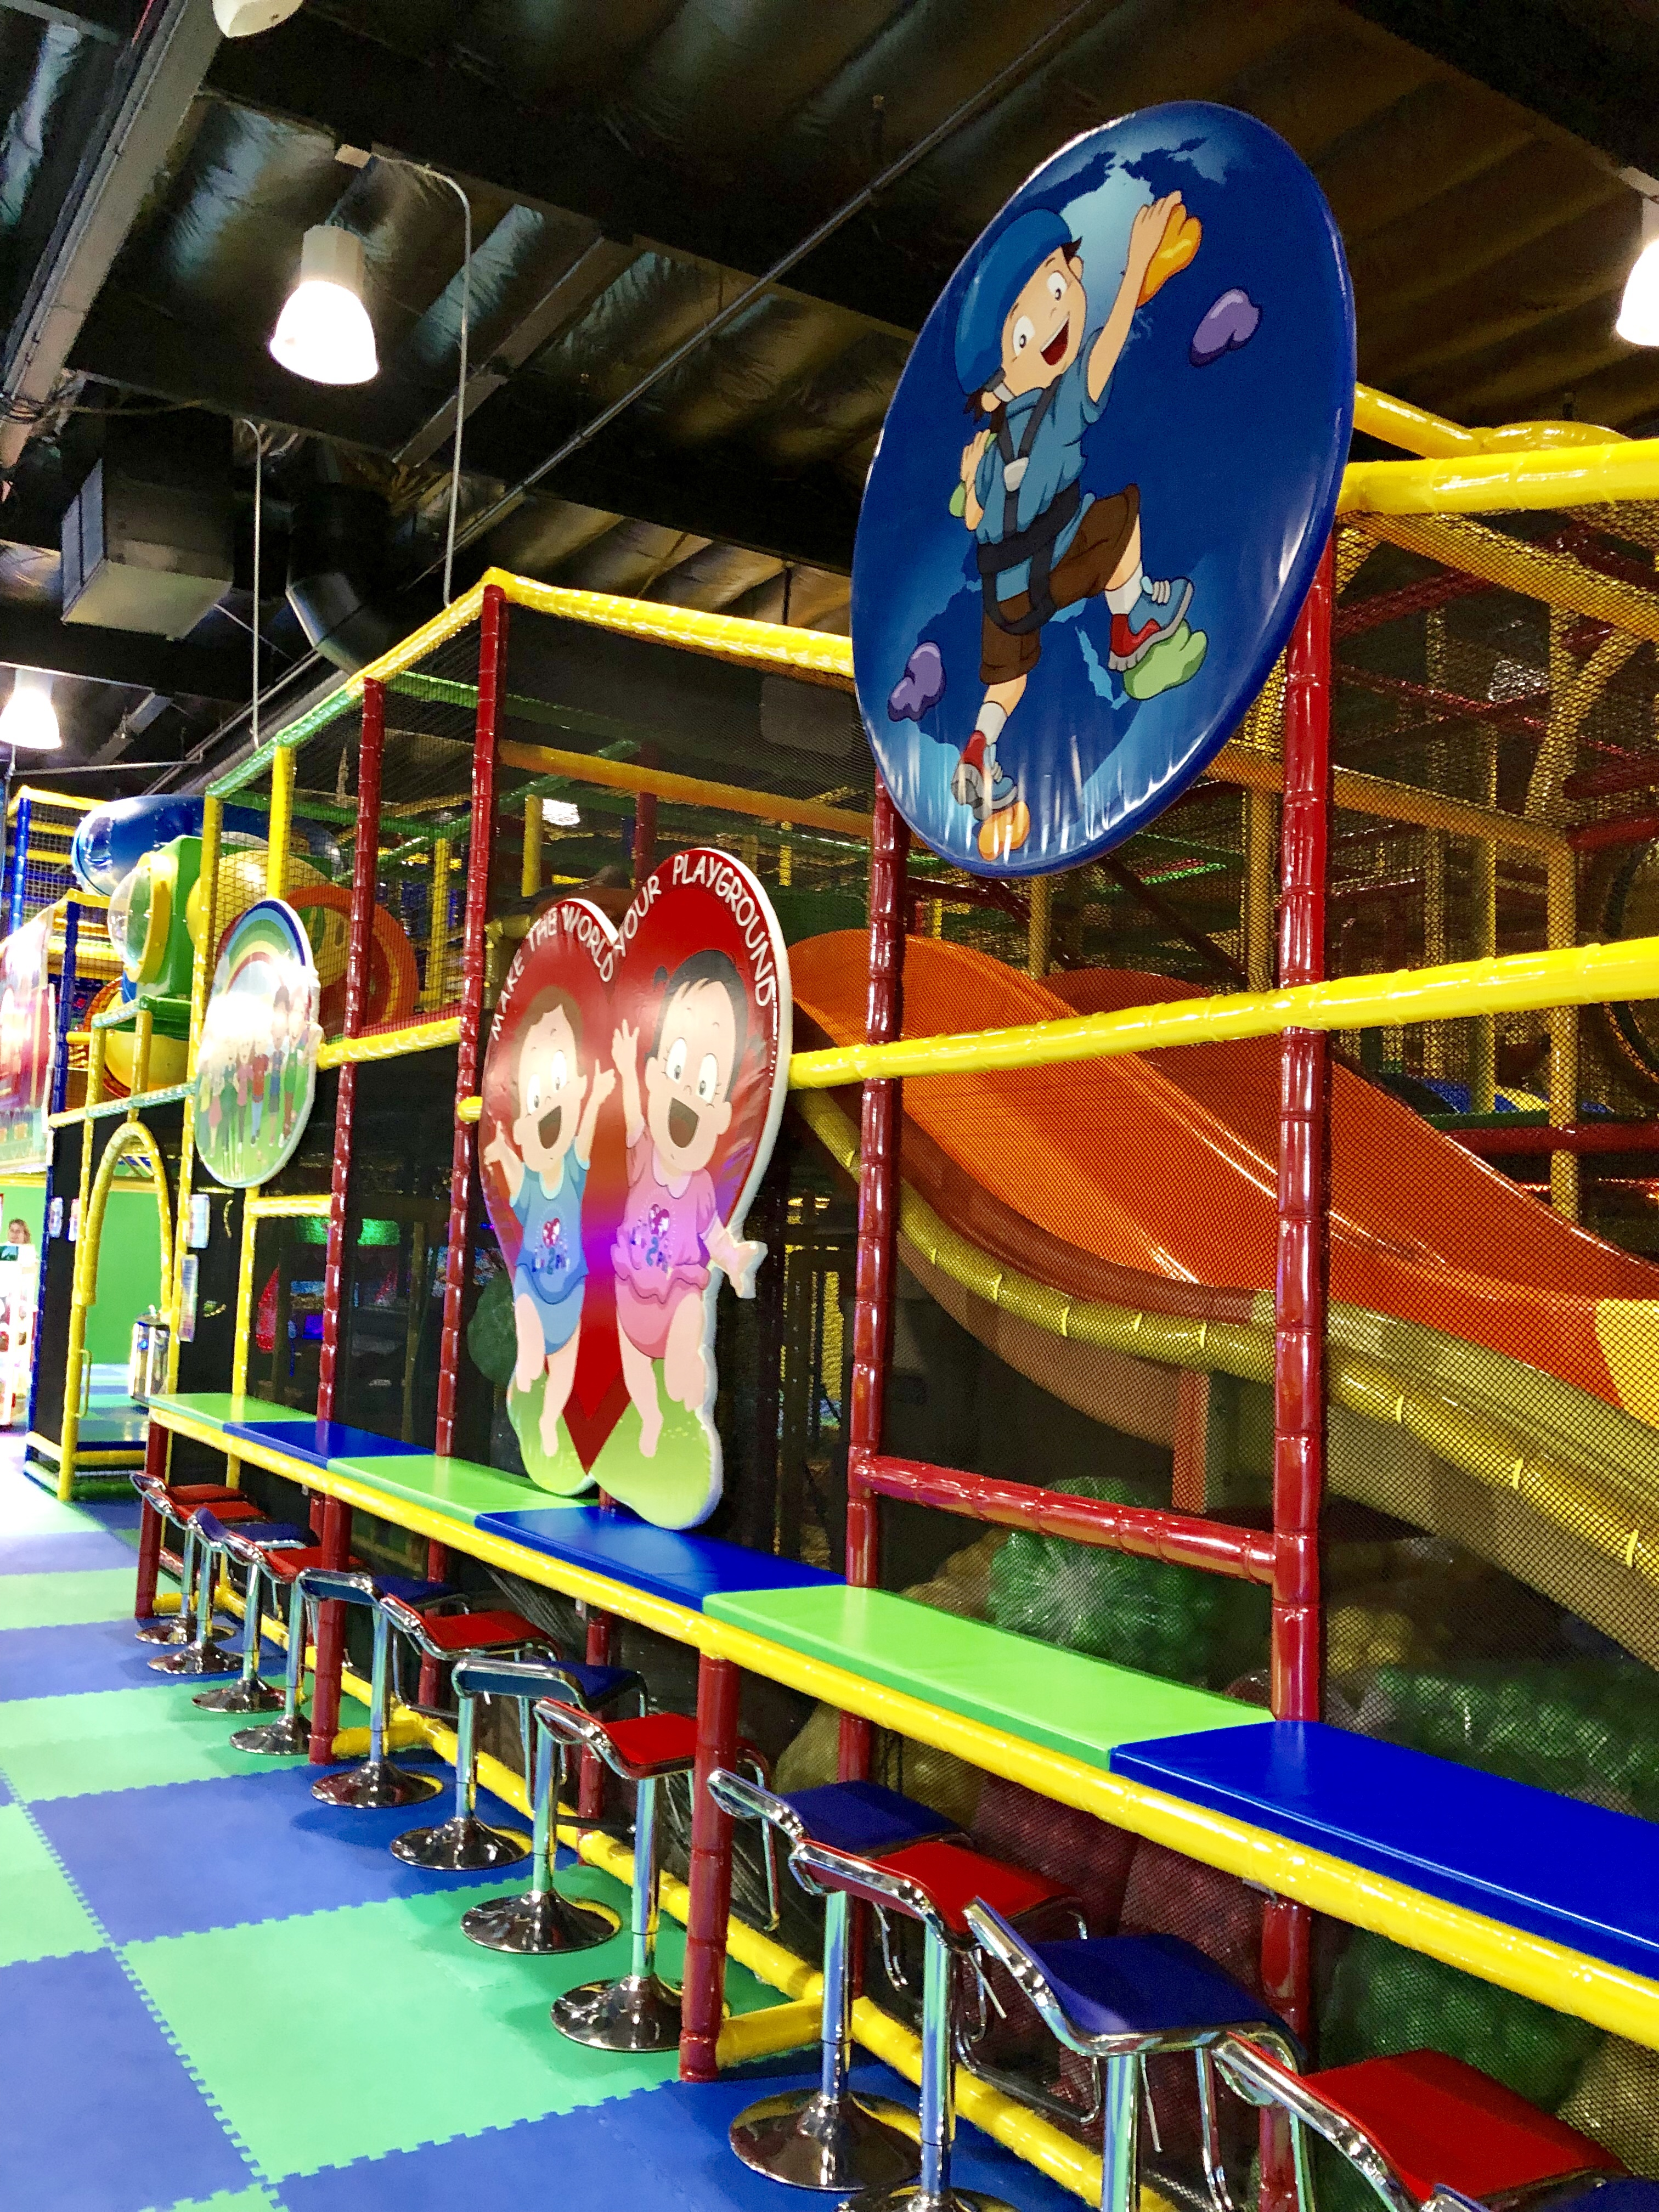 Luv 2 Play indoor playground